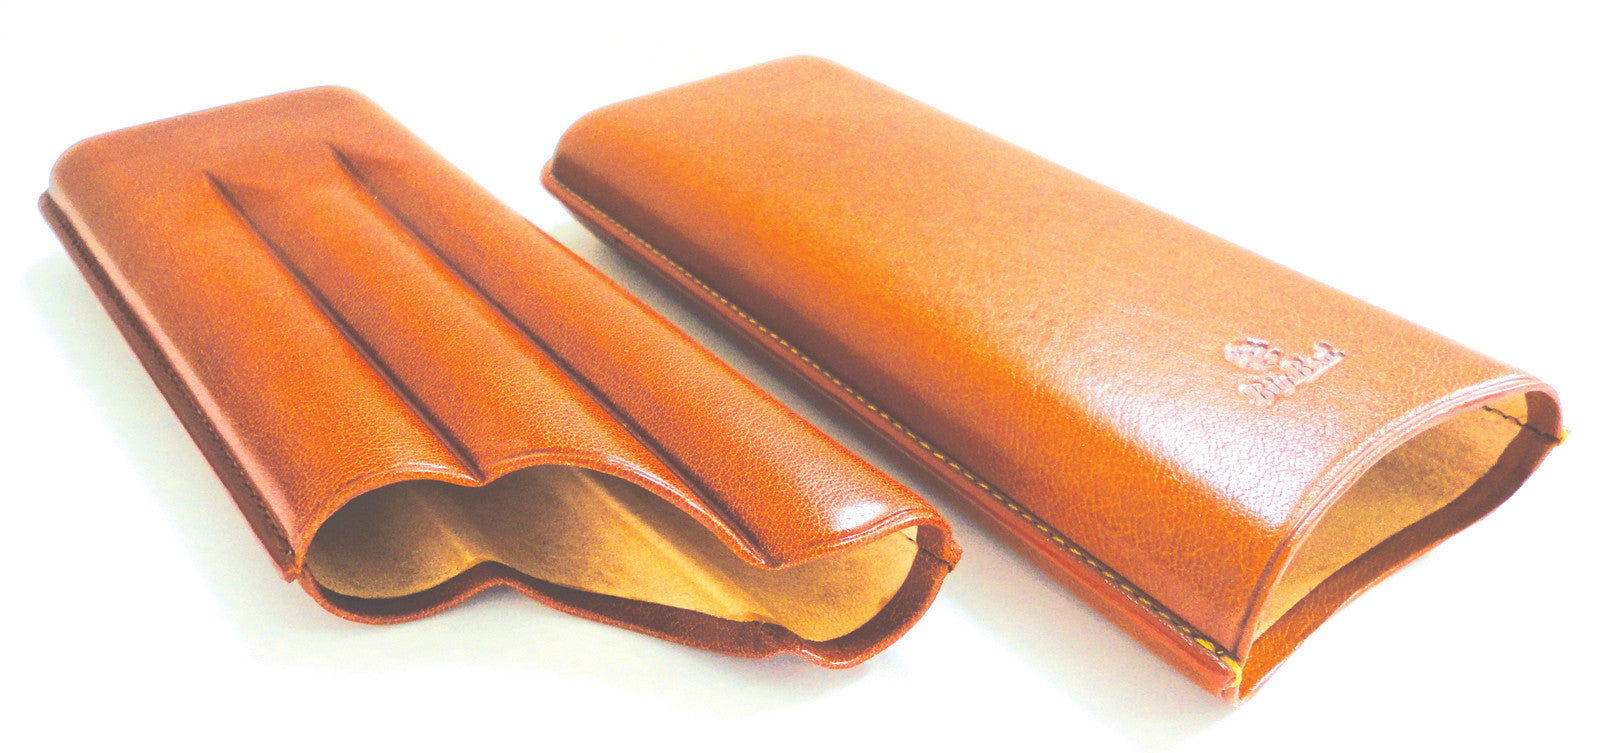 BigBen genuine leather cigar case 3 churchill 180 mm tan-tob 656.111.355